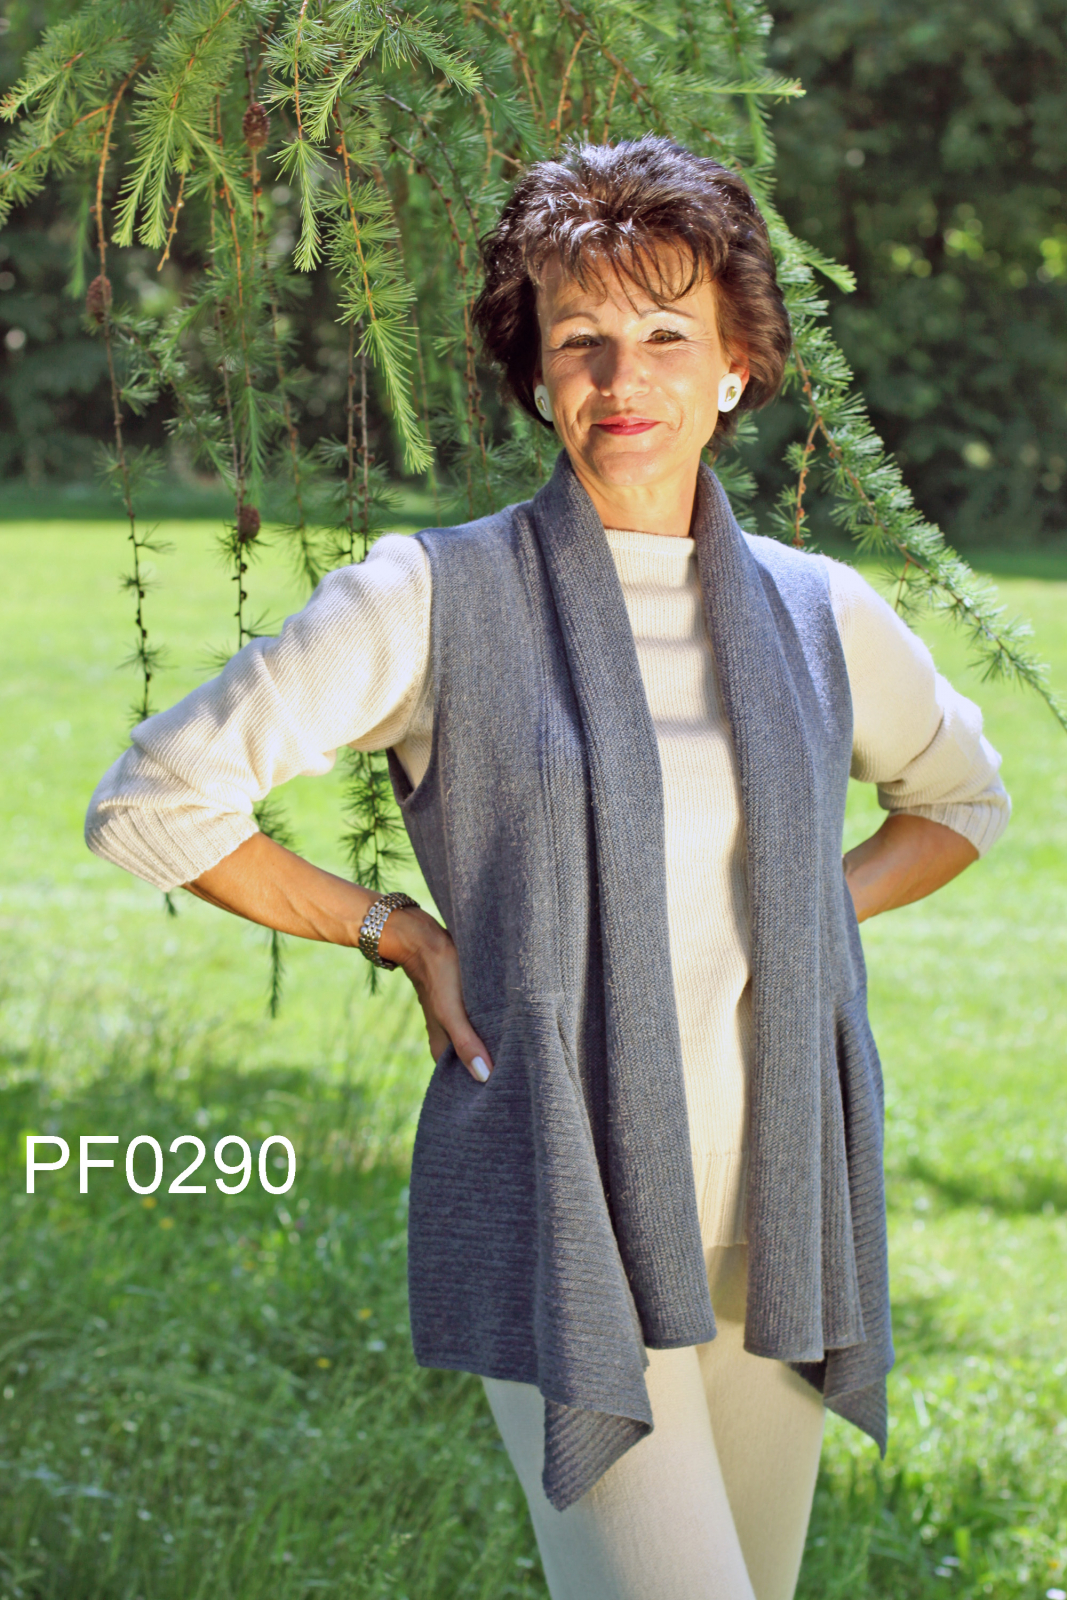 Women's Baby Alpaca Vest with Collar and geometric Details